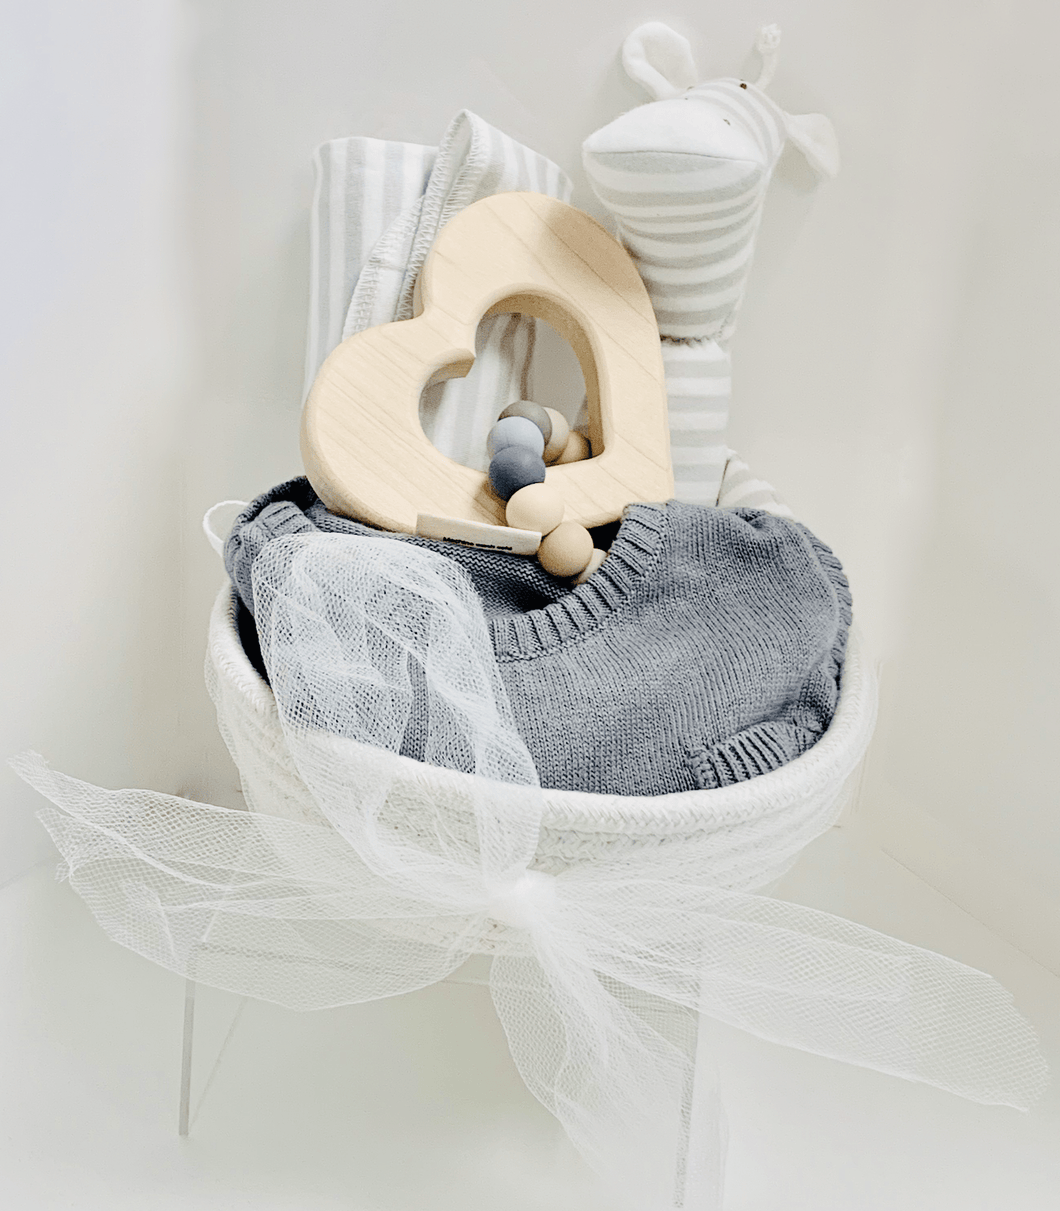 Gorgeous Grays Gender Neutral Baby Set - Make Me Yours Toy Studio